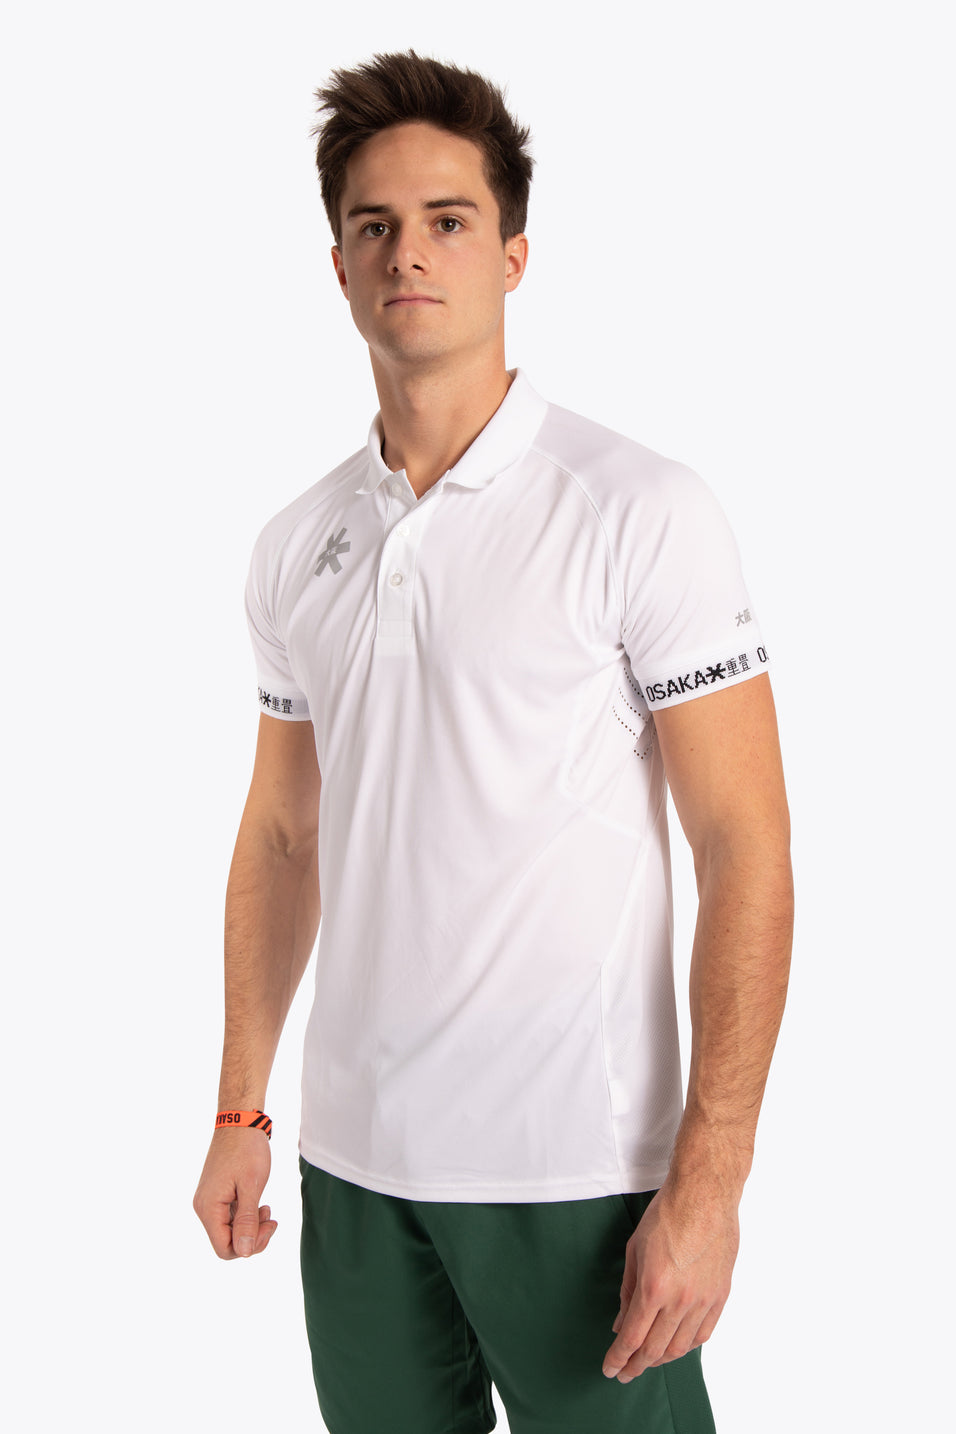 Osaka men polo jersey white